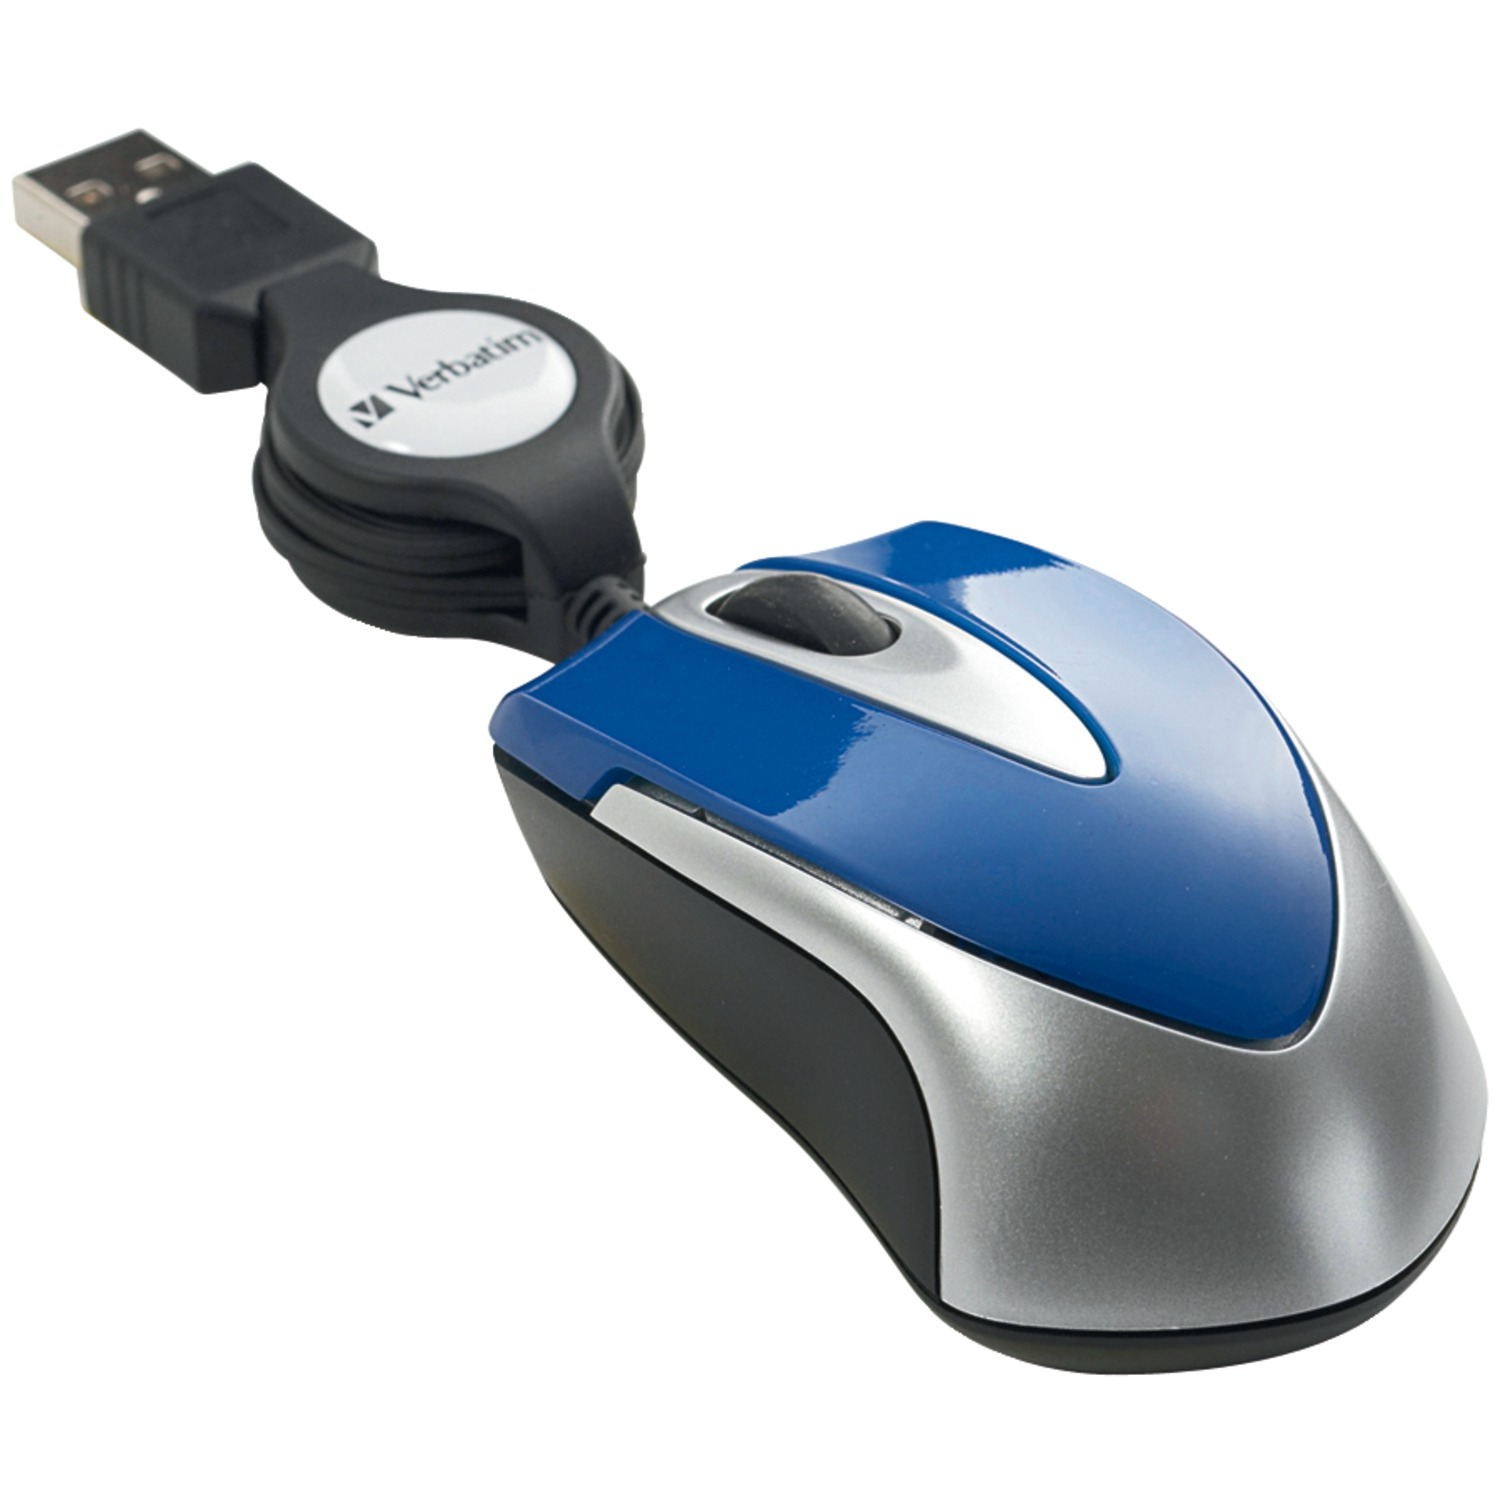 Verbatim 97249 Optical Mini Travel Mouse (Blue)